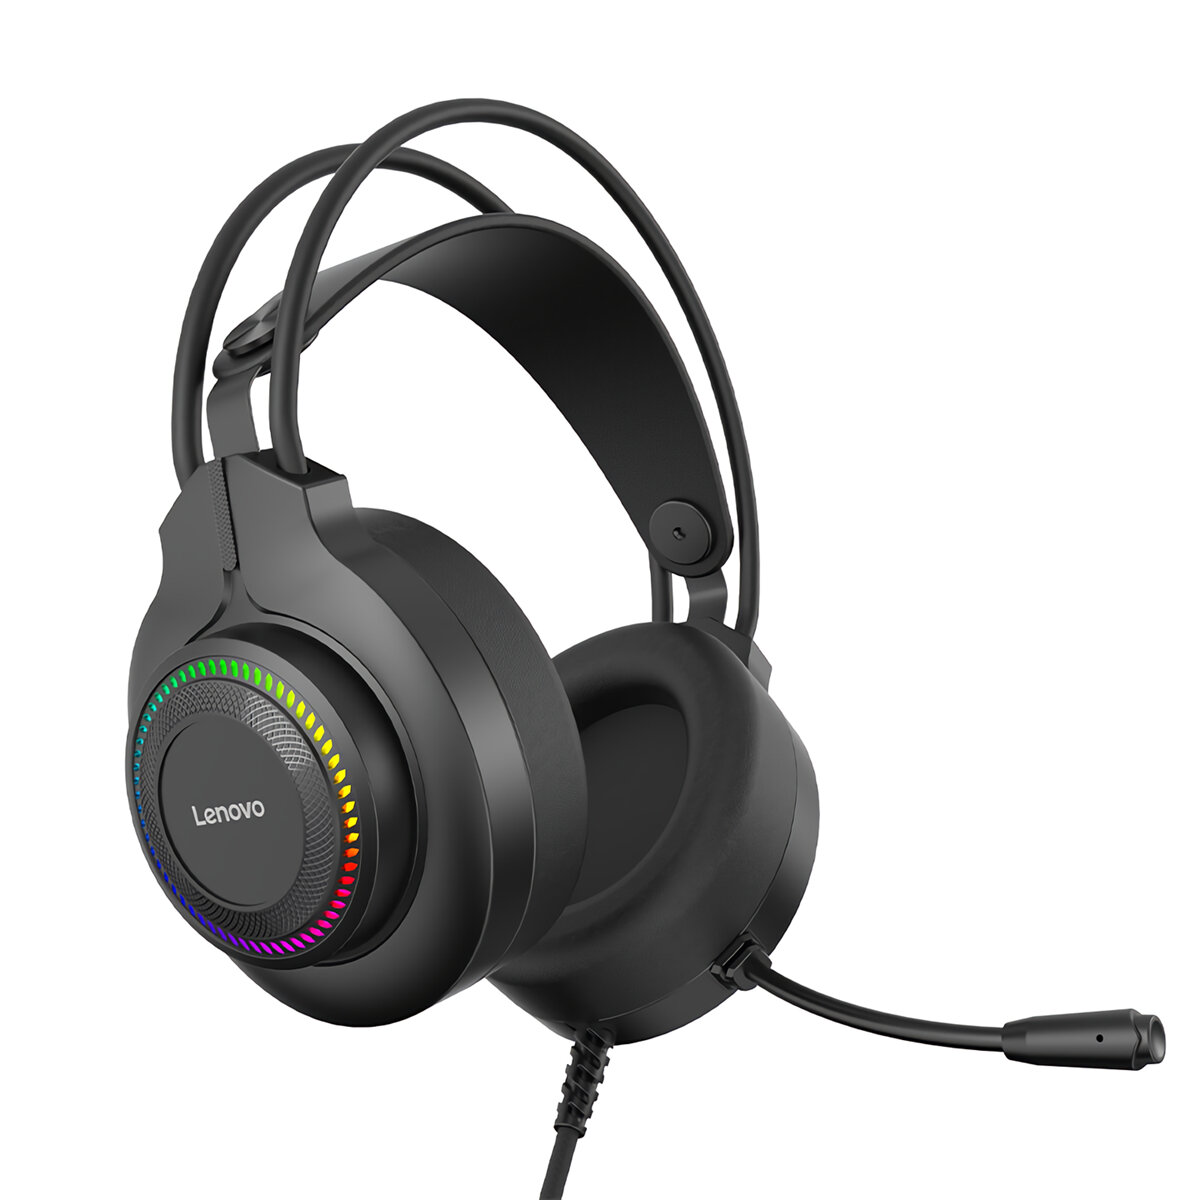 Lenovo G20-B Game Headset USB Wired 7.1 Channel Surround Sound RGB Light Over-Ear Gaming Headphone with Noise Canceling